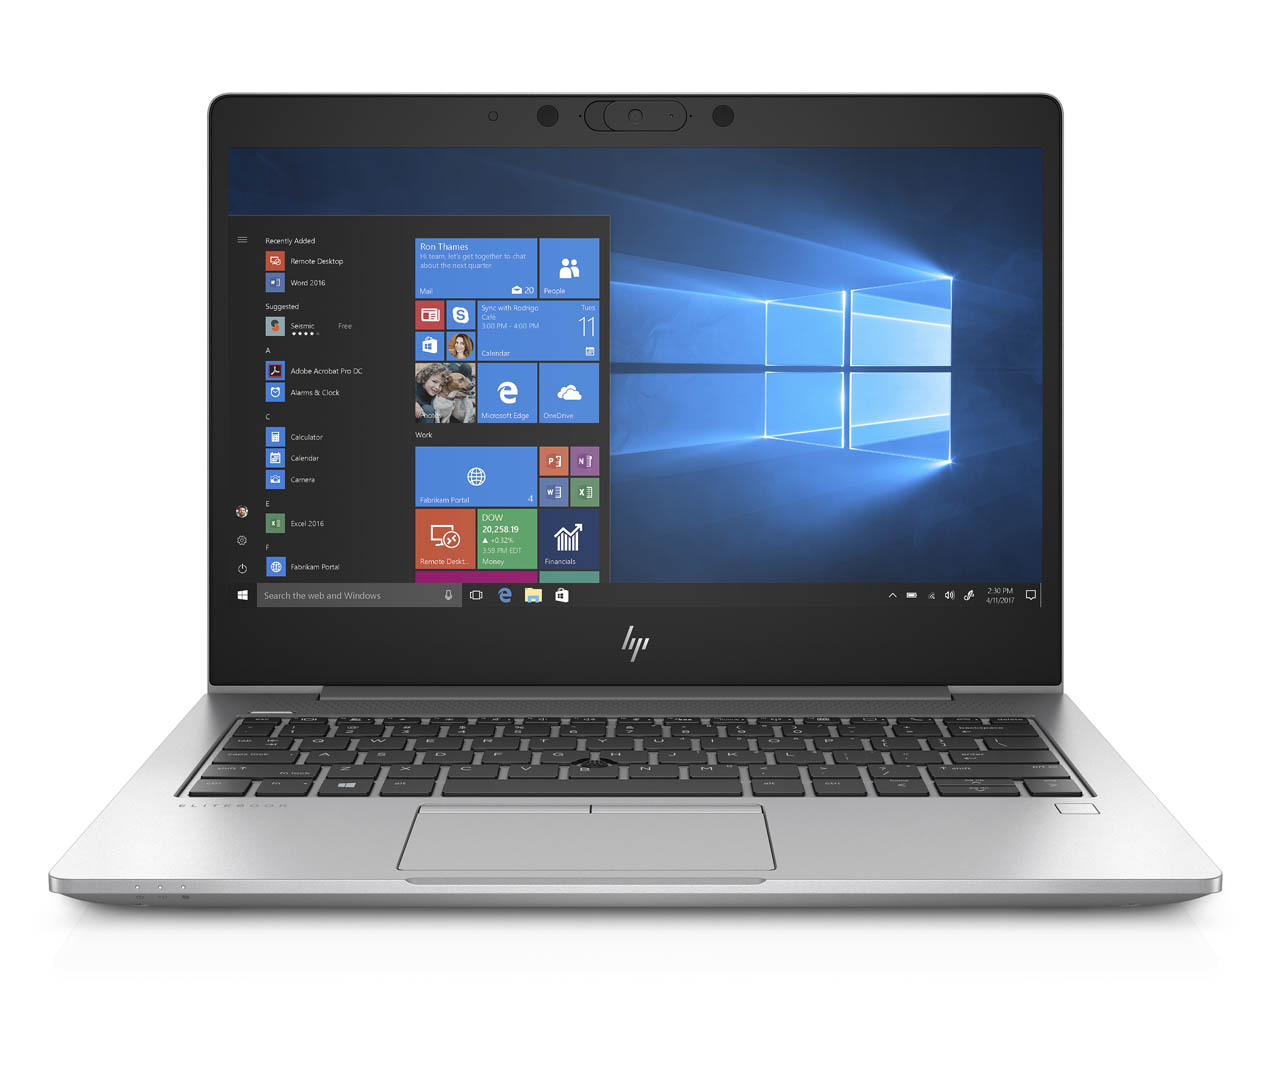 HP annuncia gli EliteBook 700 G6 e l'HP mt45 Mobile Thin Client 1